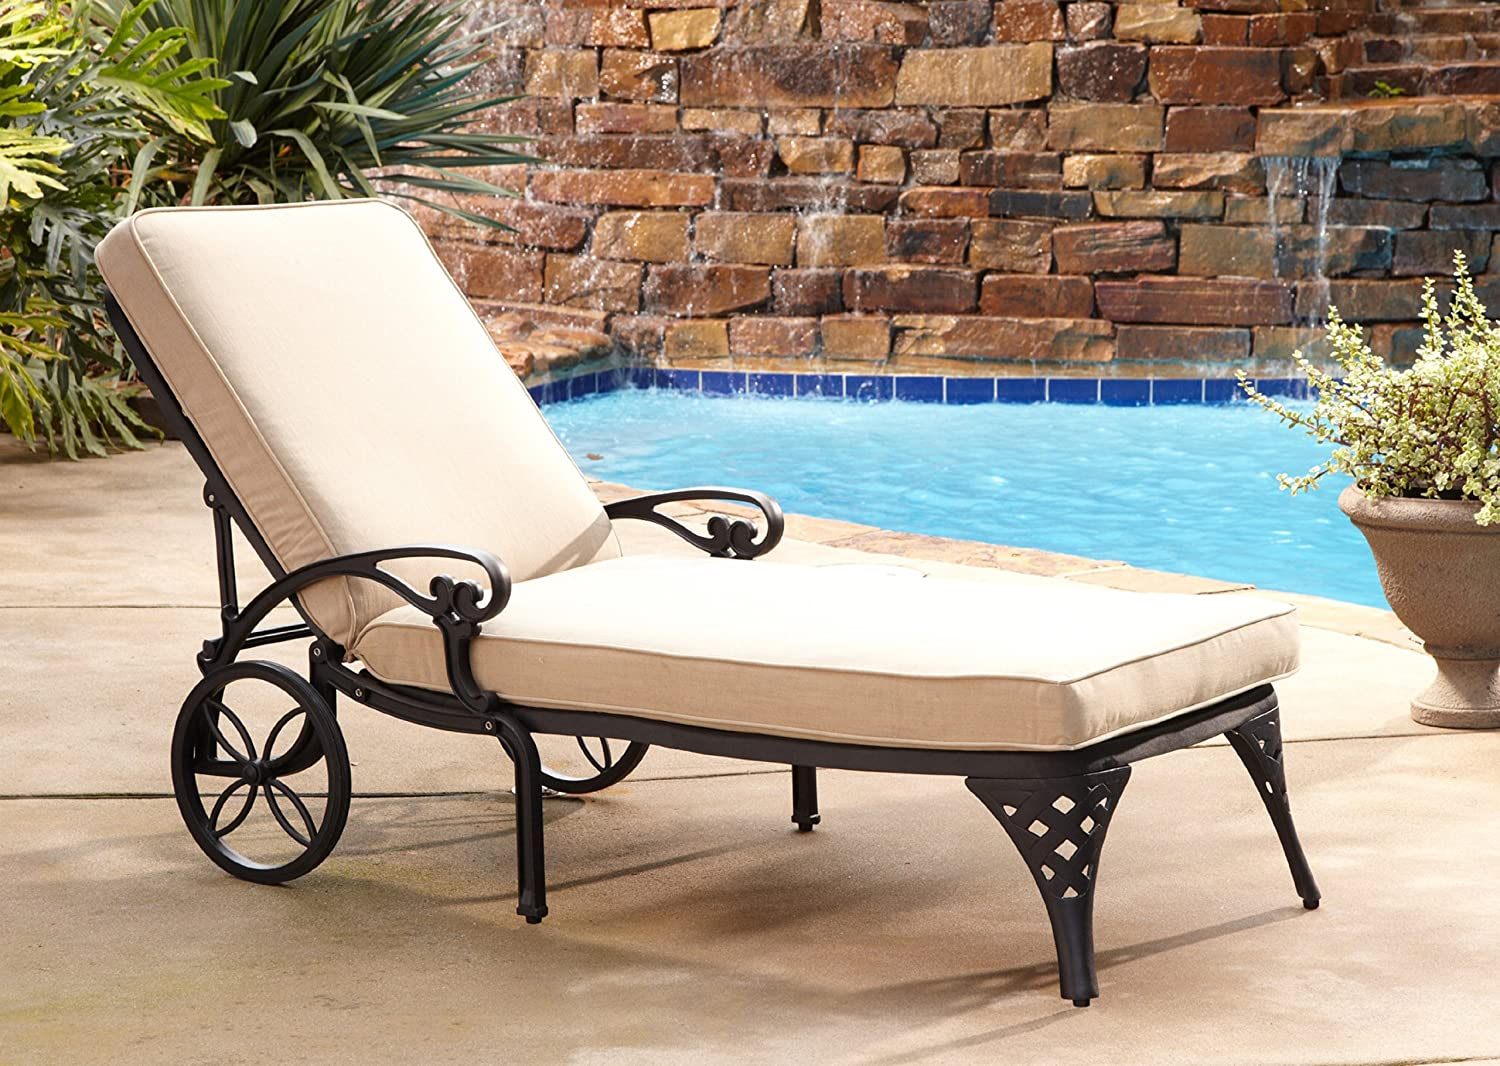 Amazon.com  Home Styles Biscayne Chaise Lounge Chair Taupe Cushion  Patio Lounge Chairs  Garden u0026 Outdoor : taupe chaise lounge - Sectionals, Sofas & Couches